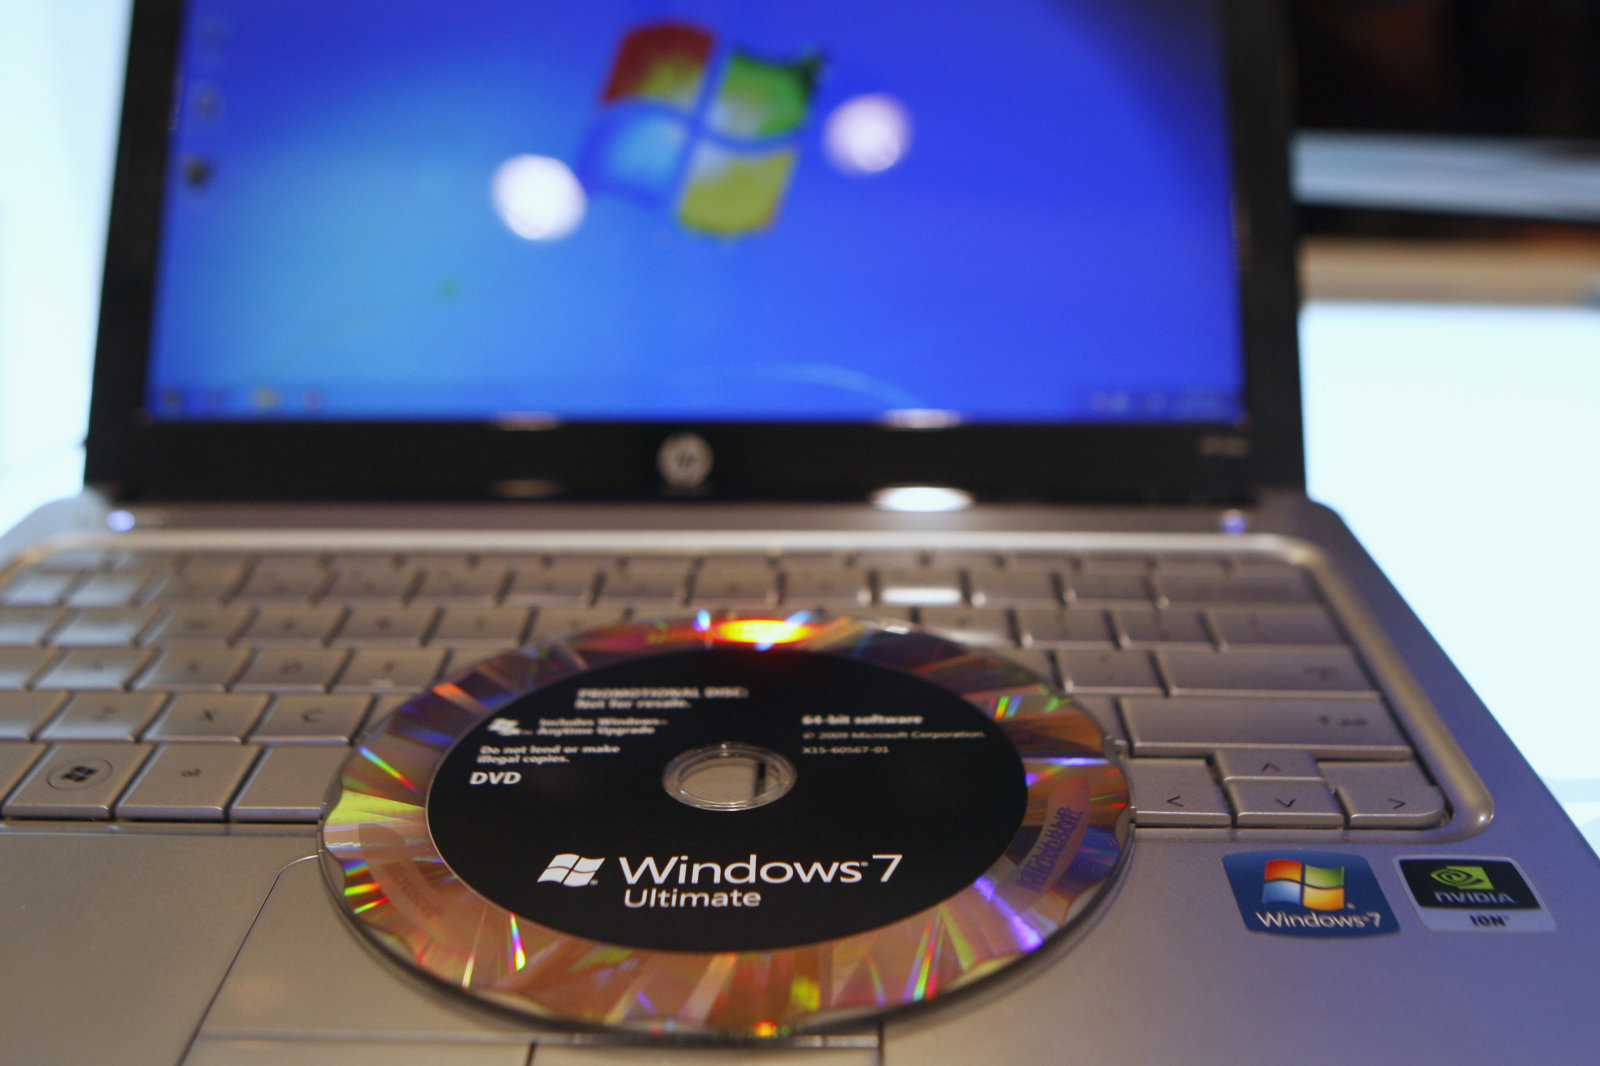 The new Windows 7 operating system installation DVD is pictured on a notebook at the Windows 7 Launch Party in New York, October 22, 2009. Microsoft Corp. launched Windows 7 on Thursday in its most important release for more than a decade, aiming to win back customers after the disappointing Vista and strengthen its grip on the PC market.     REUTERS/Shannon Stapleton (UNITED STATES BUSINESS SCI TECH)